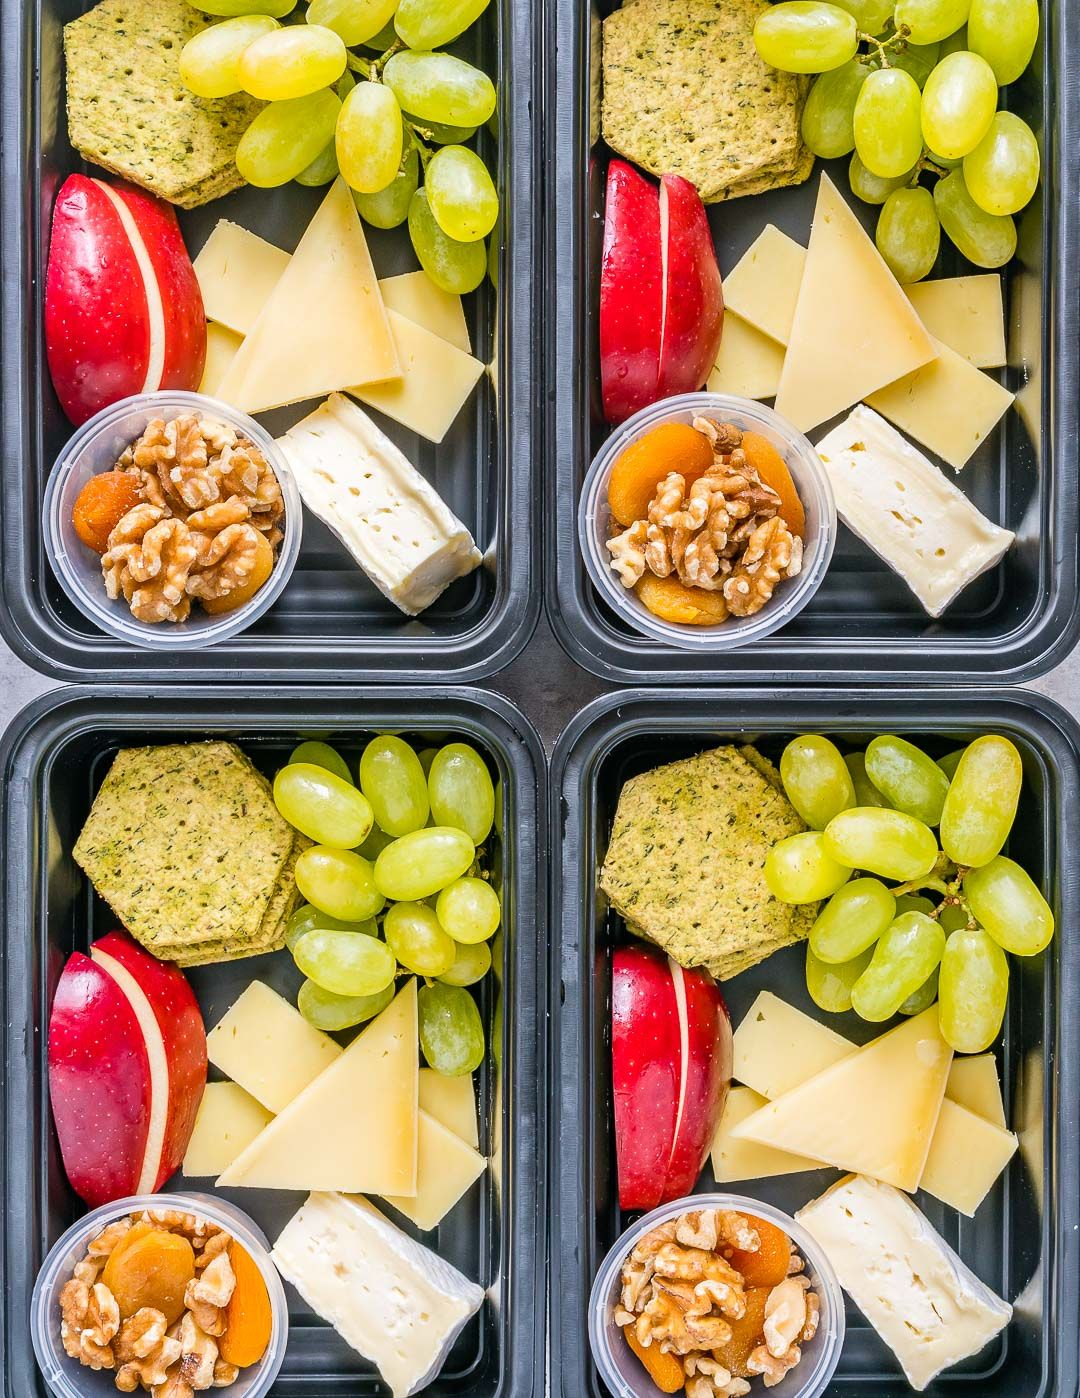 Cheese Fruit Bistro Boxes For Clean Grab N Go Snacking Recipe Clean Eating Snacks Healthy Recipes Clean Food Crush